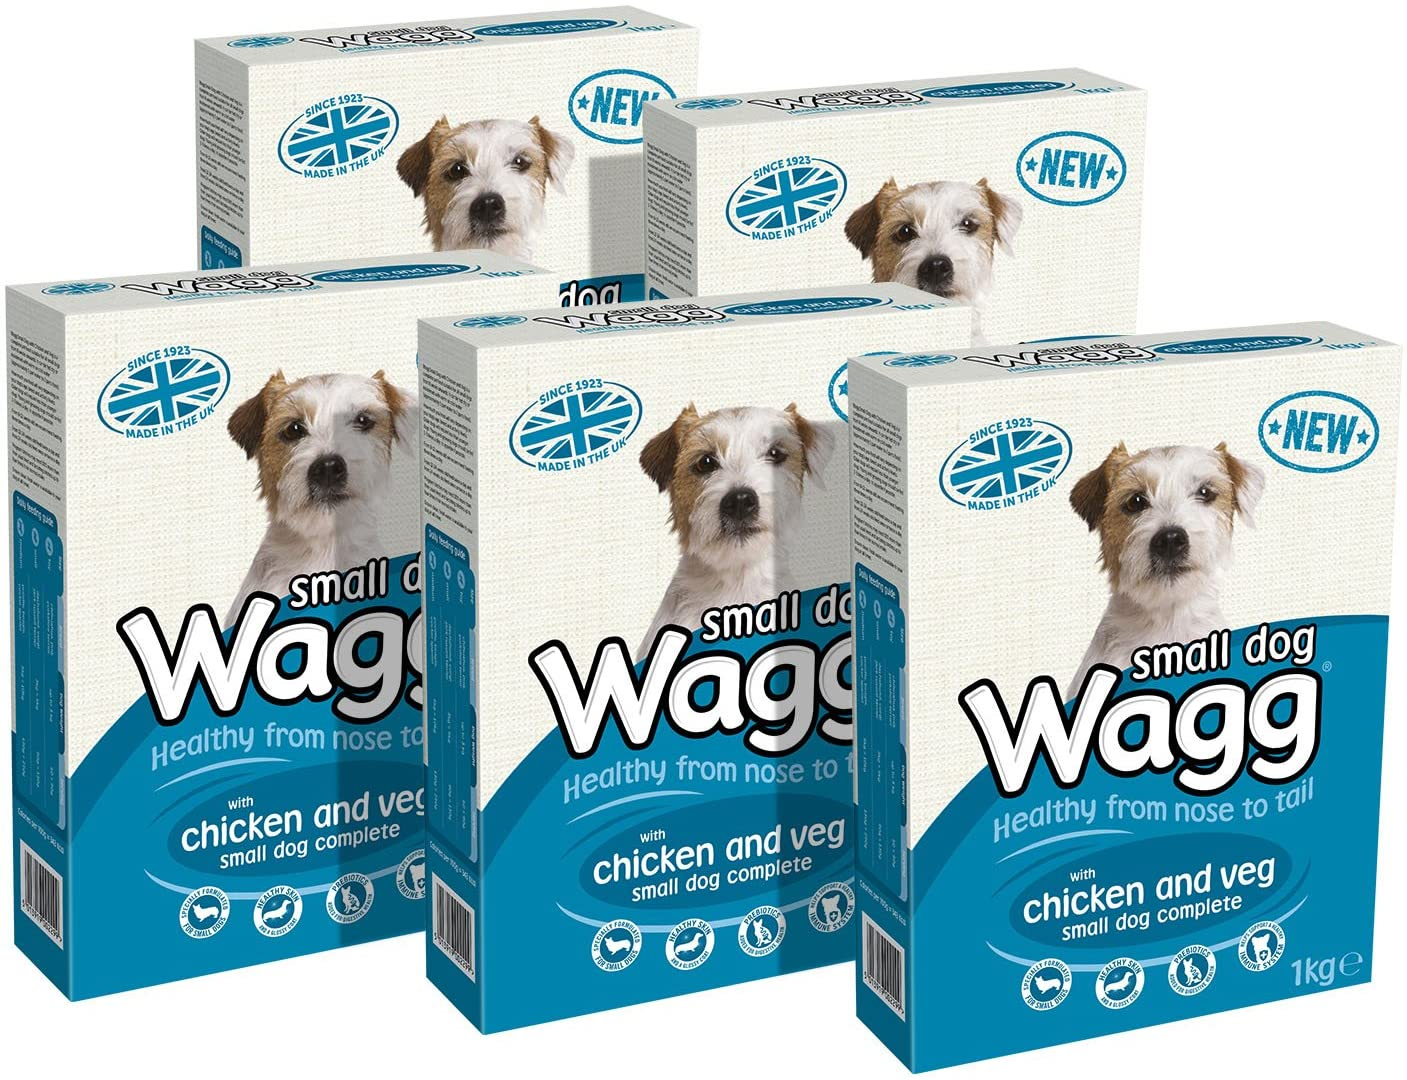 Wagg Small Dog with Chicken and Veg, 1 kg, Pack of 5